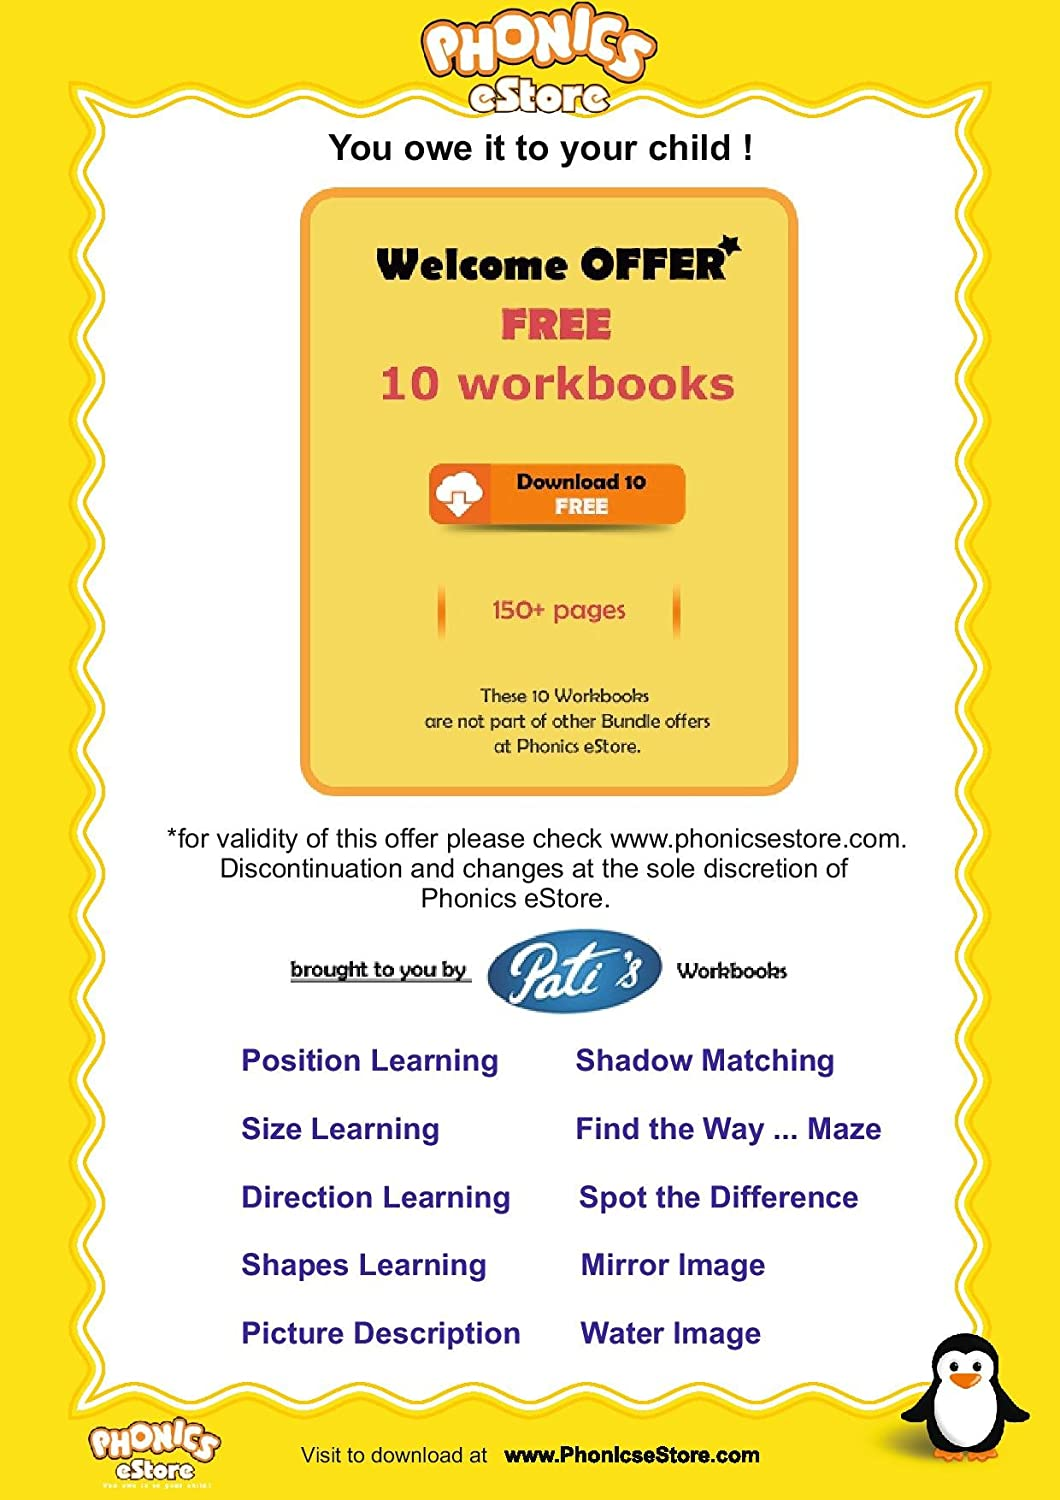 Workbooks jolly phonics workbook 1 free download : Pati's Phonics 1 workbook - Phonics learning book for jolly kids ...